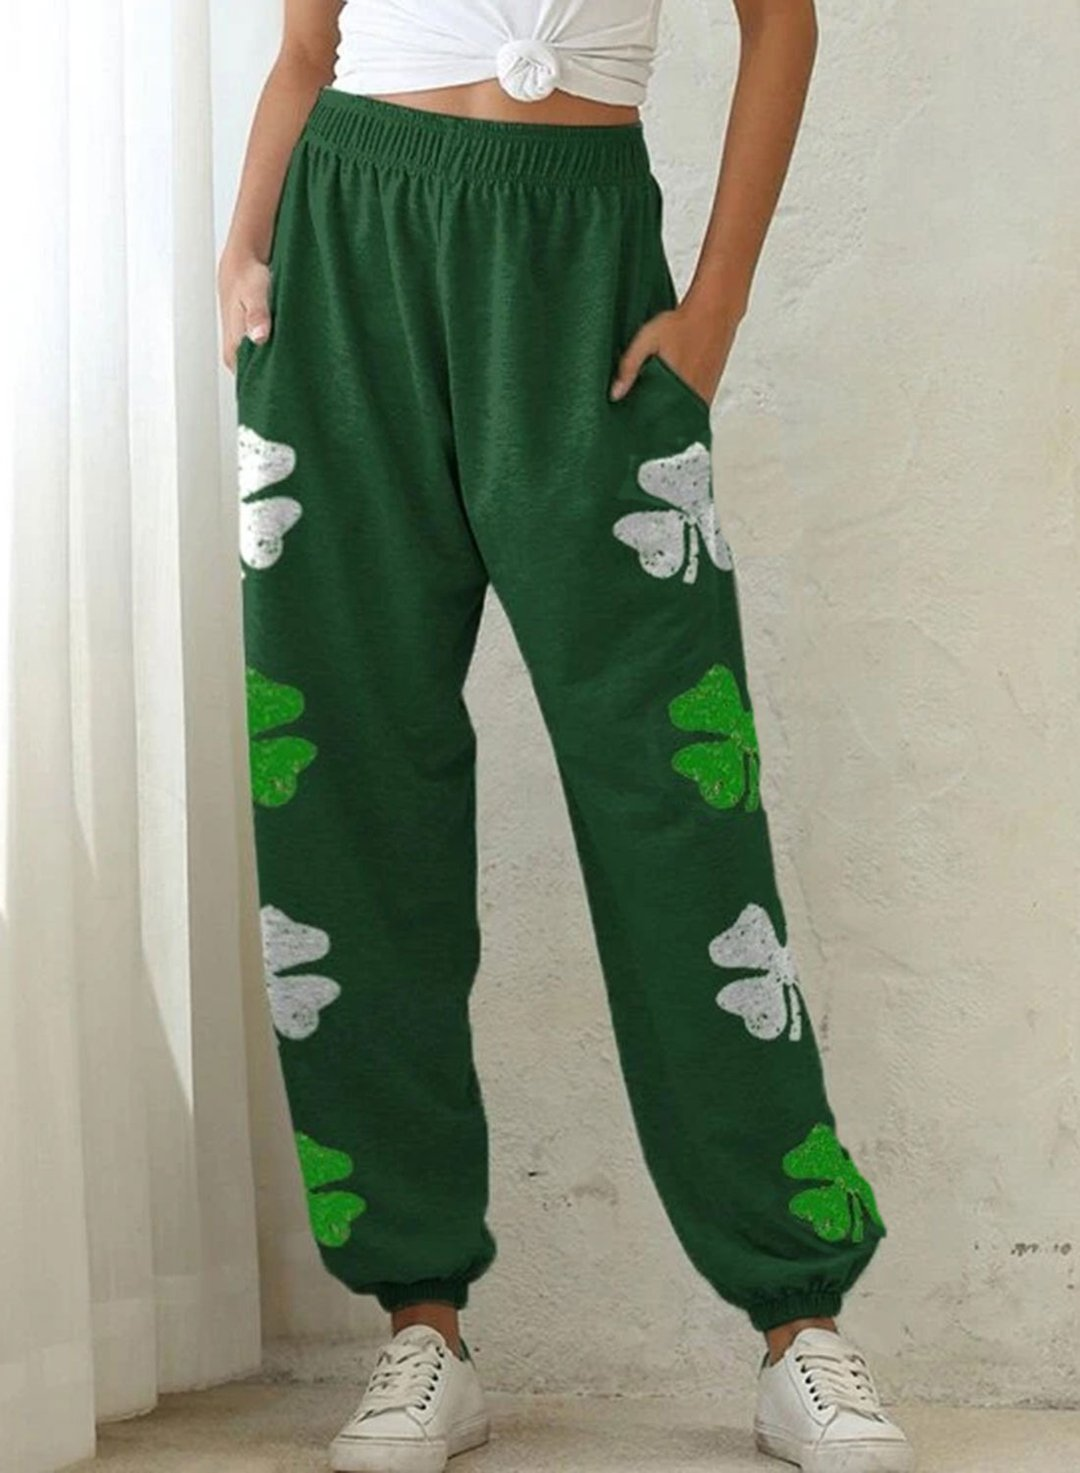 Green Women's Joggers Clover Festival Straight High Waist Full Length Casual Joggers LC771548-9